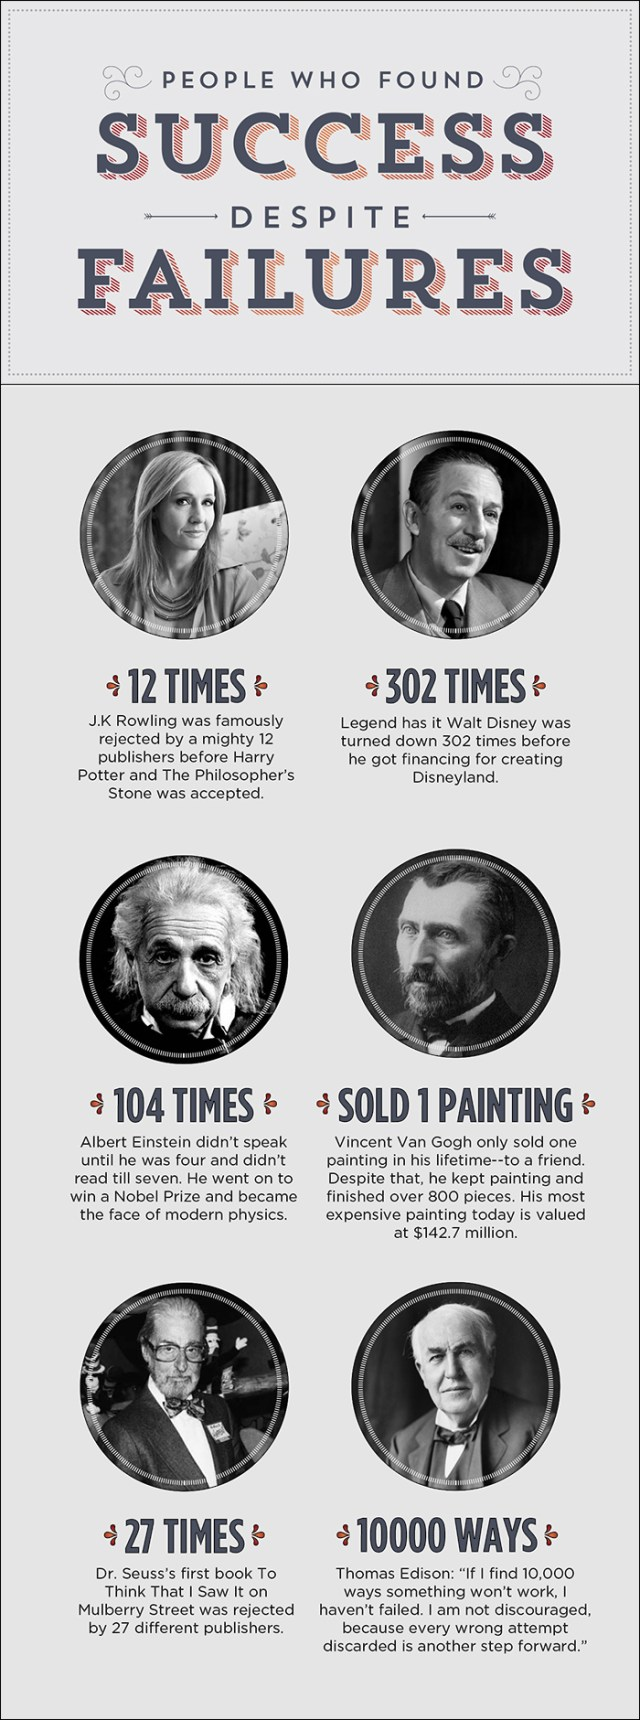 Famous People Who Found Success Despite Failures